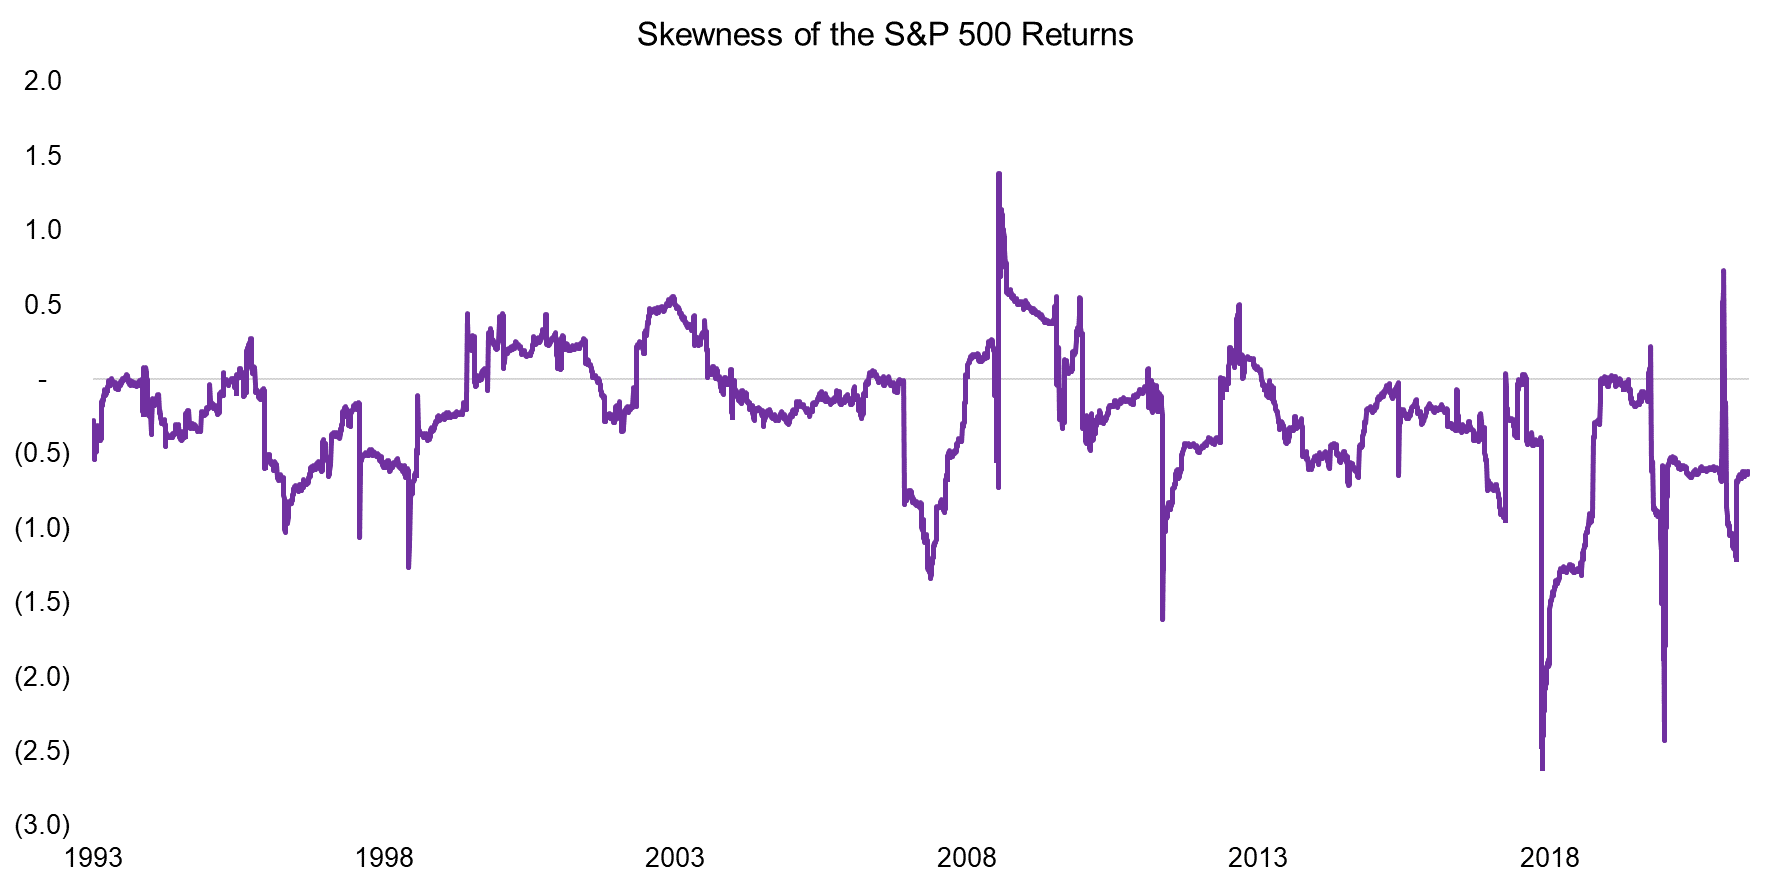 Skewness of the S&P 500 Returns